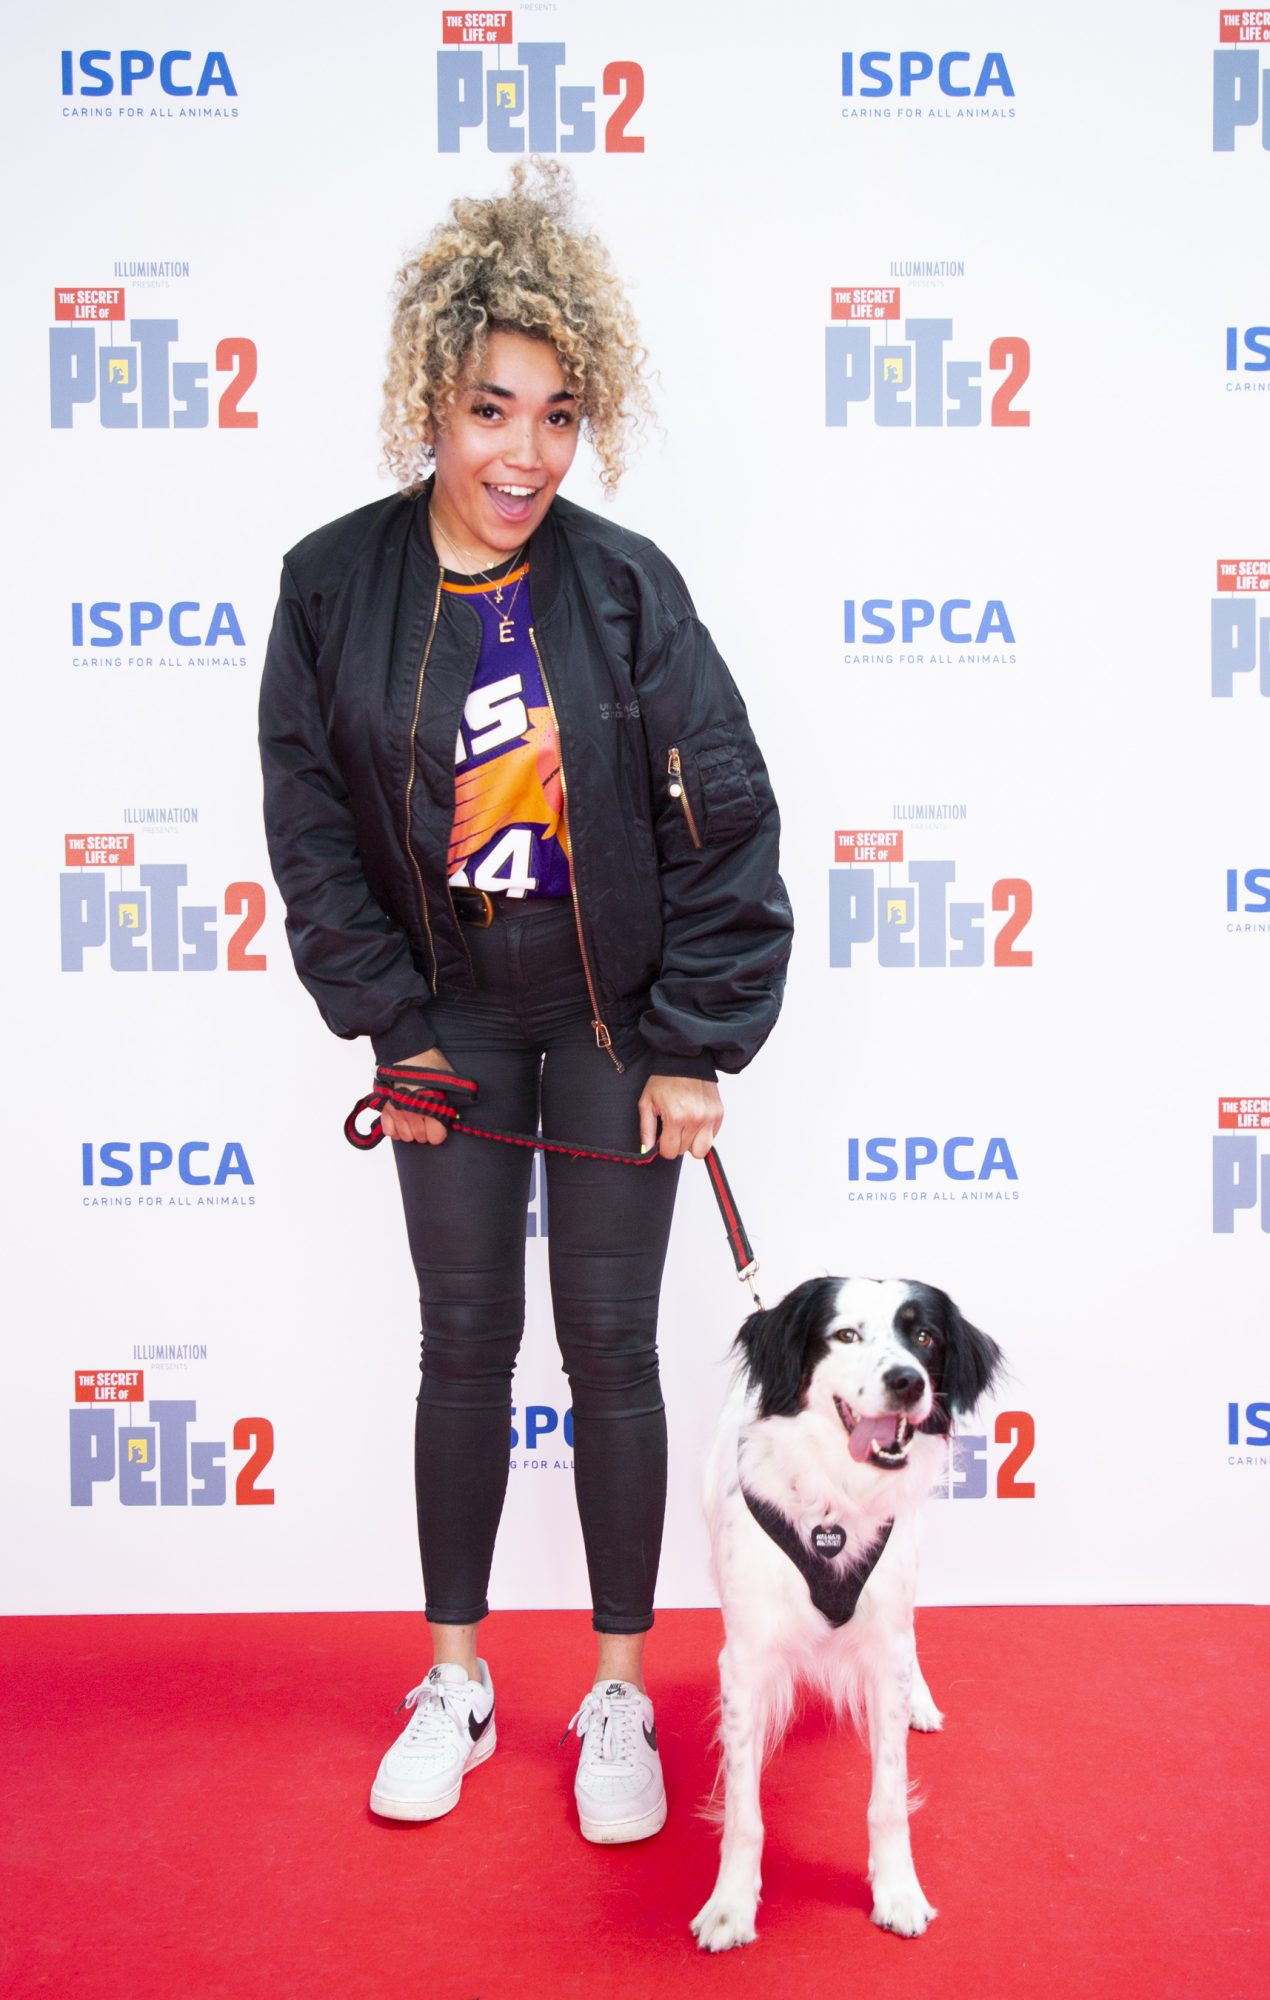 Erica Cody & Bowie pictured at the Irish premiere screening of The Secret Life of Pets 2 at Odeon Point Square, Dublin hosted by Universal Pictures in association with the ISPCA. The Secret Life of Pets 2 is in cinemas from Friday May 24th. Photo: Anthony Woods